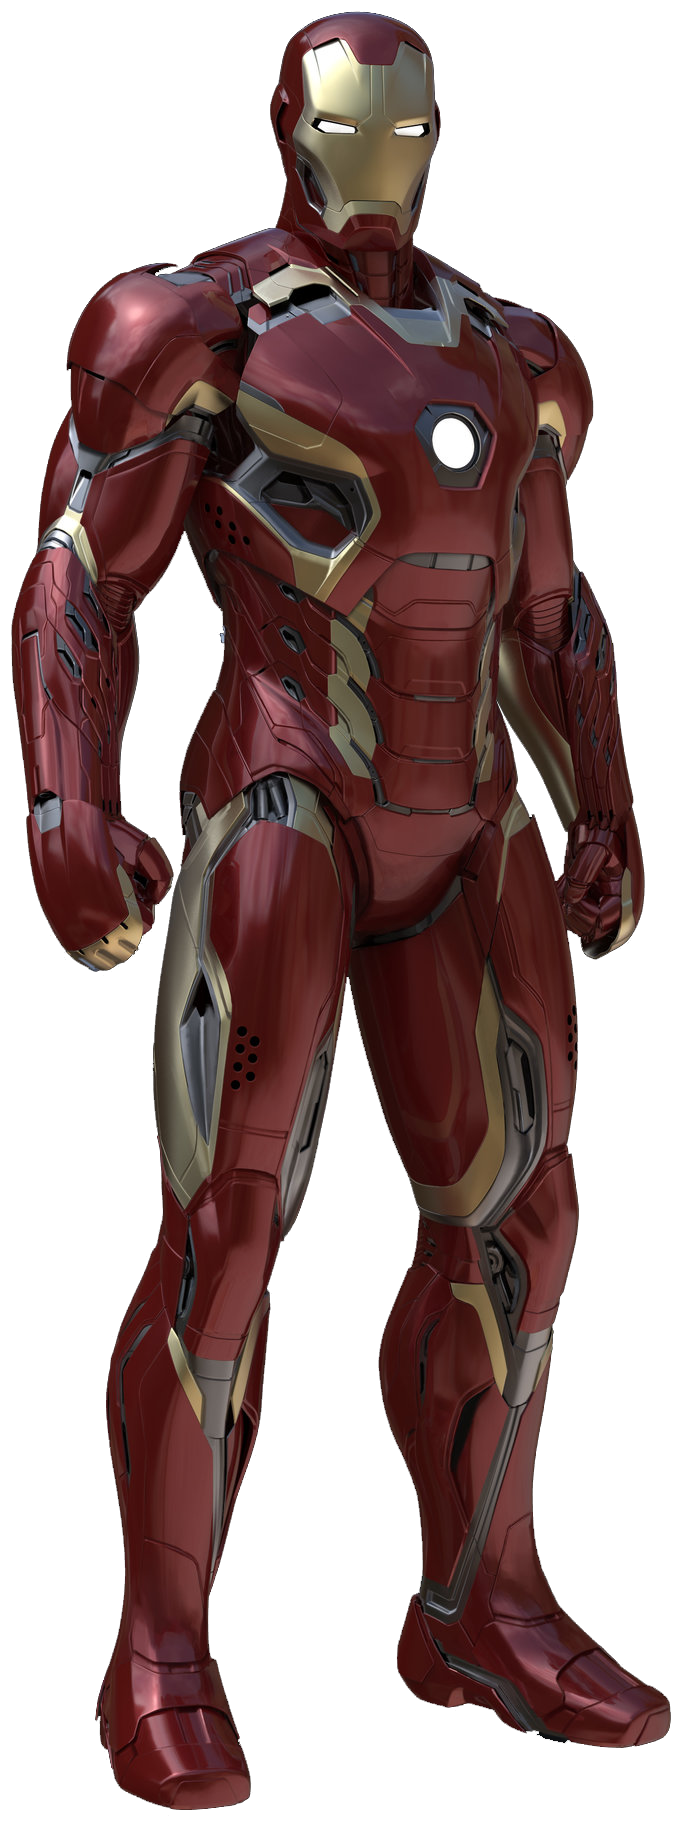 Iron Man Armor MK XLV (Earth-199999)